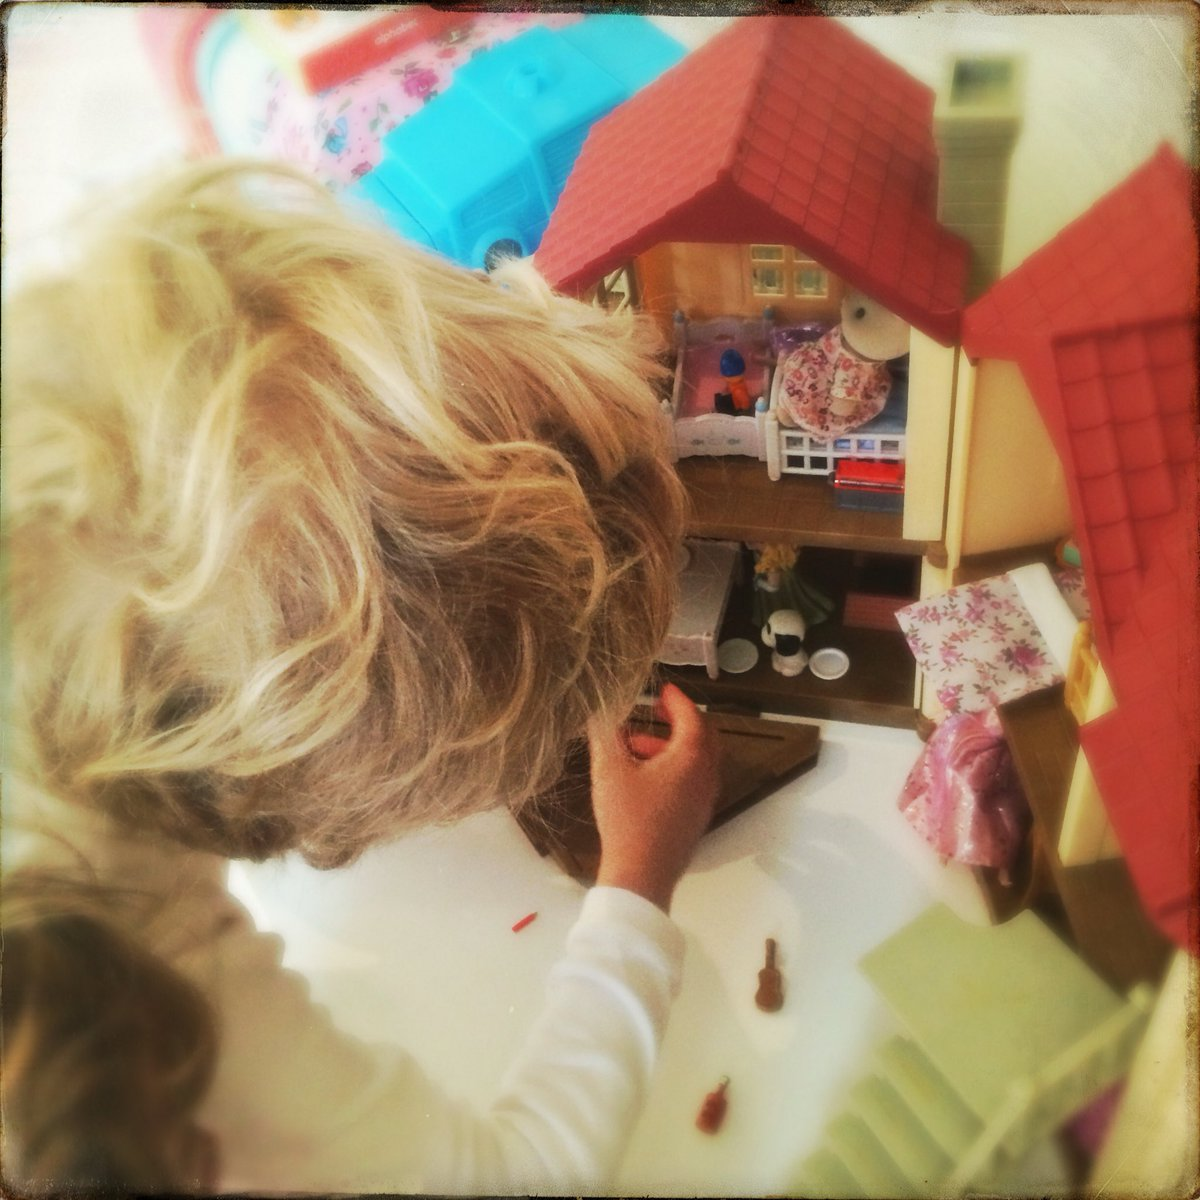 5yo son serving up breakfast in his doll's house this morning 😍#lettoysbetoys @LetToysBeToys https://t.co/11YWji5MGs